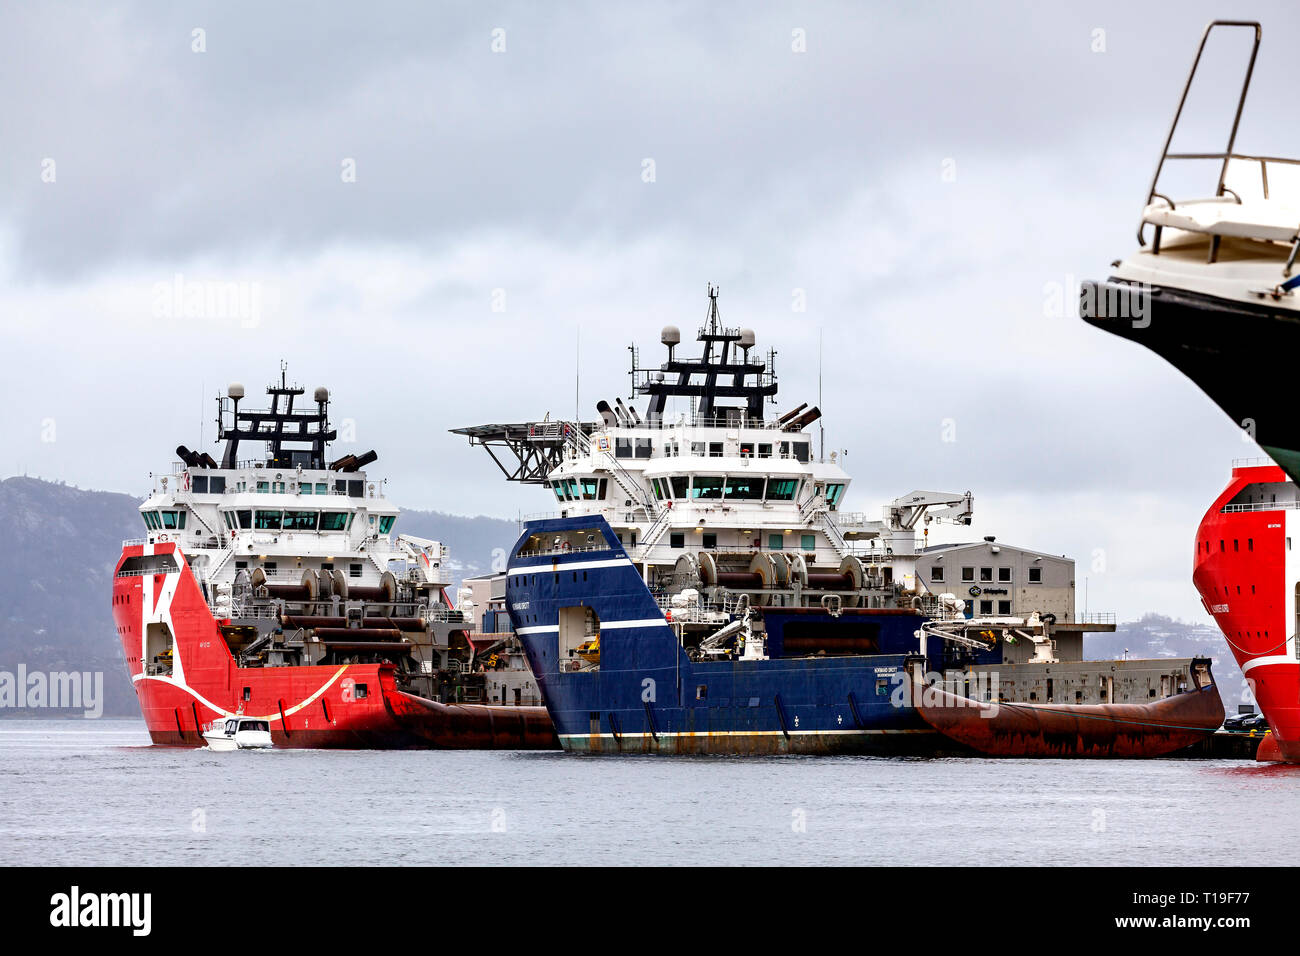 Two AHTS anchor handling tug supply vessesl Normand Drott and KL Saltfjord moored at Skolten terminal, port of Bergen, Norway. - Stock Image